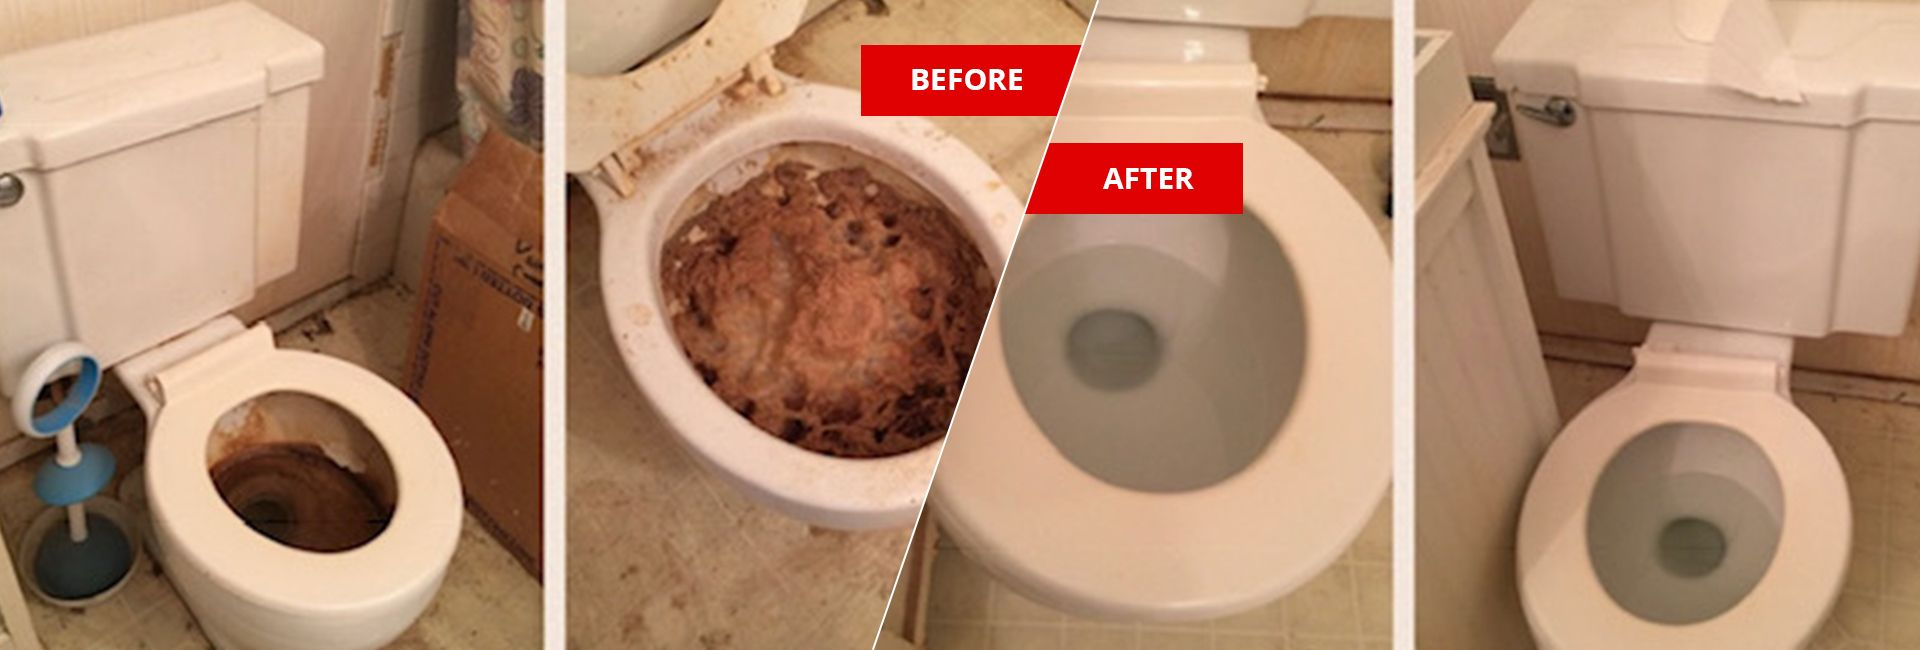 feces-urine-cleanup